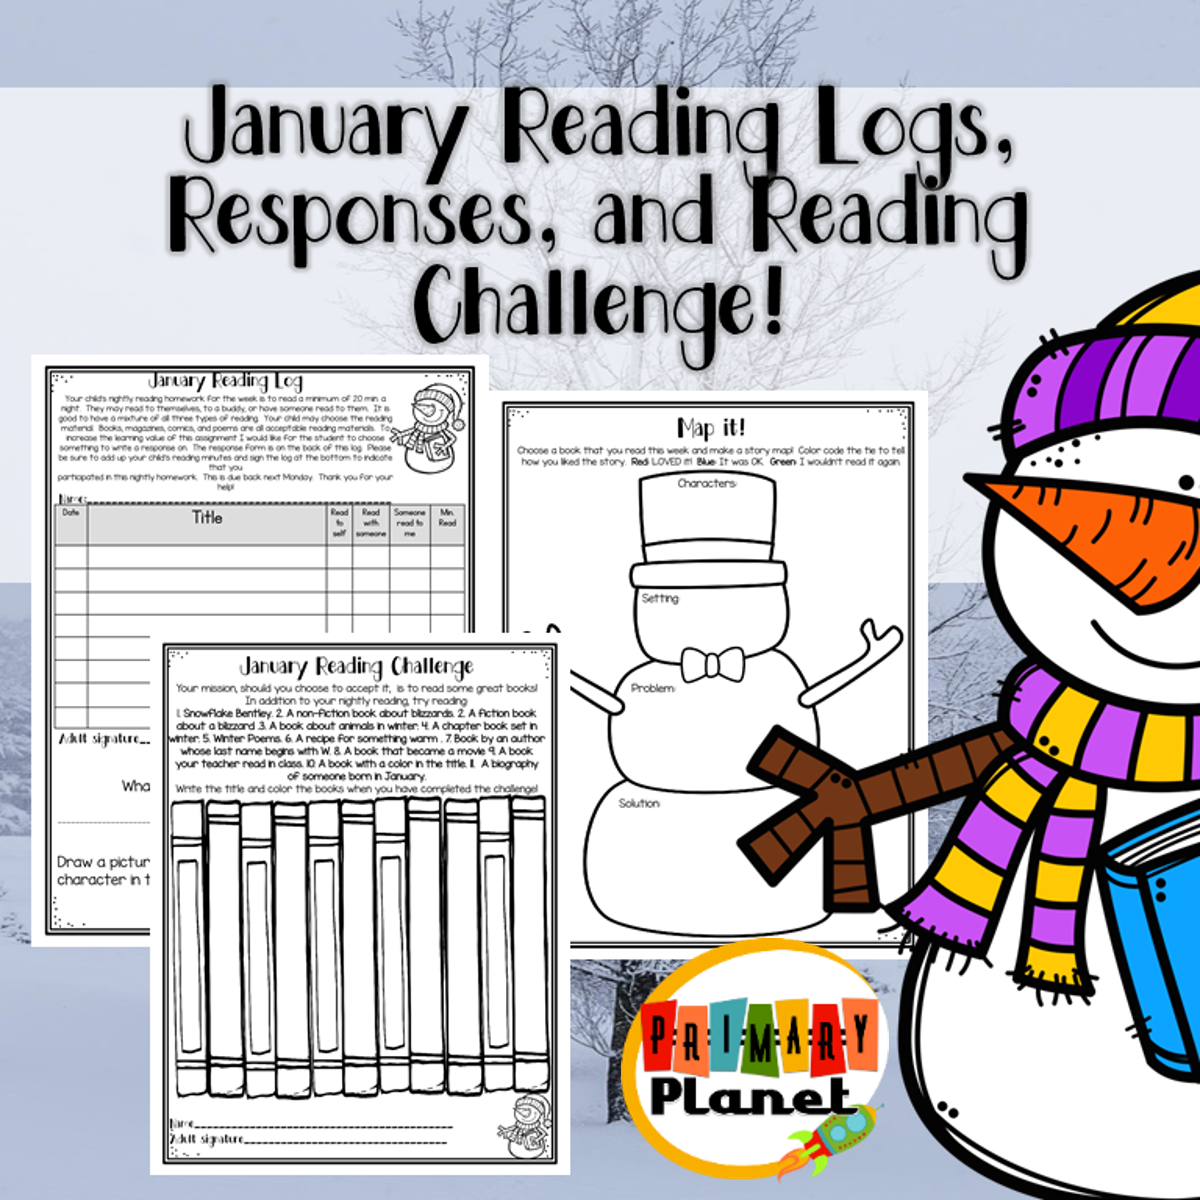 Image with Text of January Reading Logs, Responses, and Challenges.